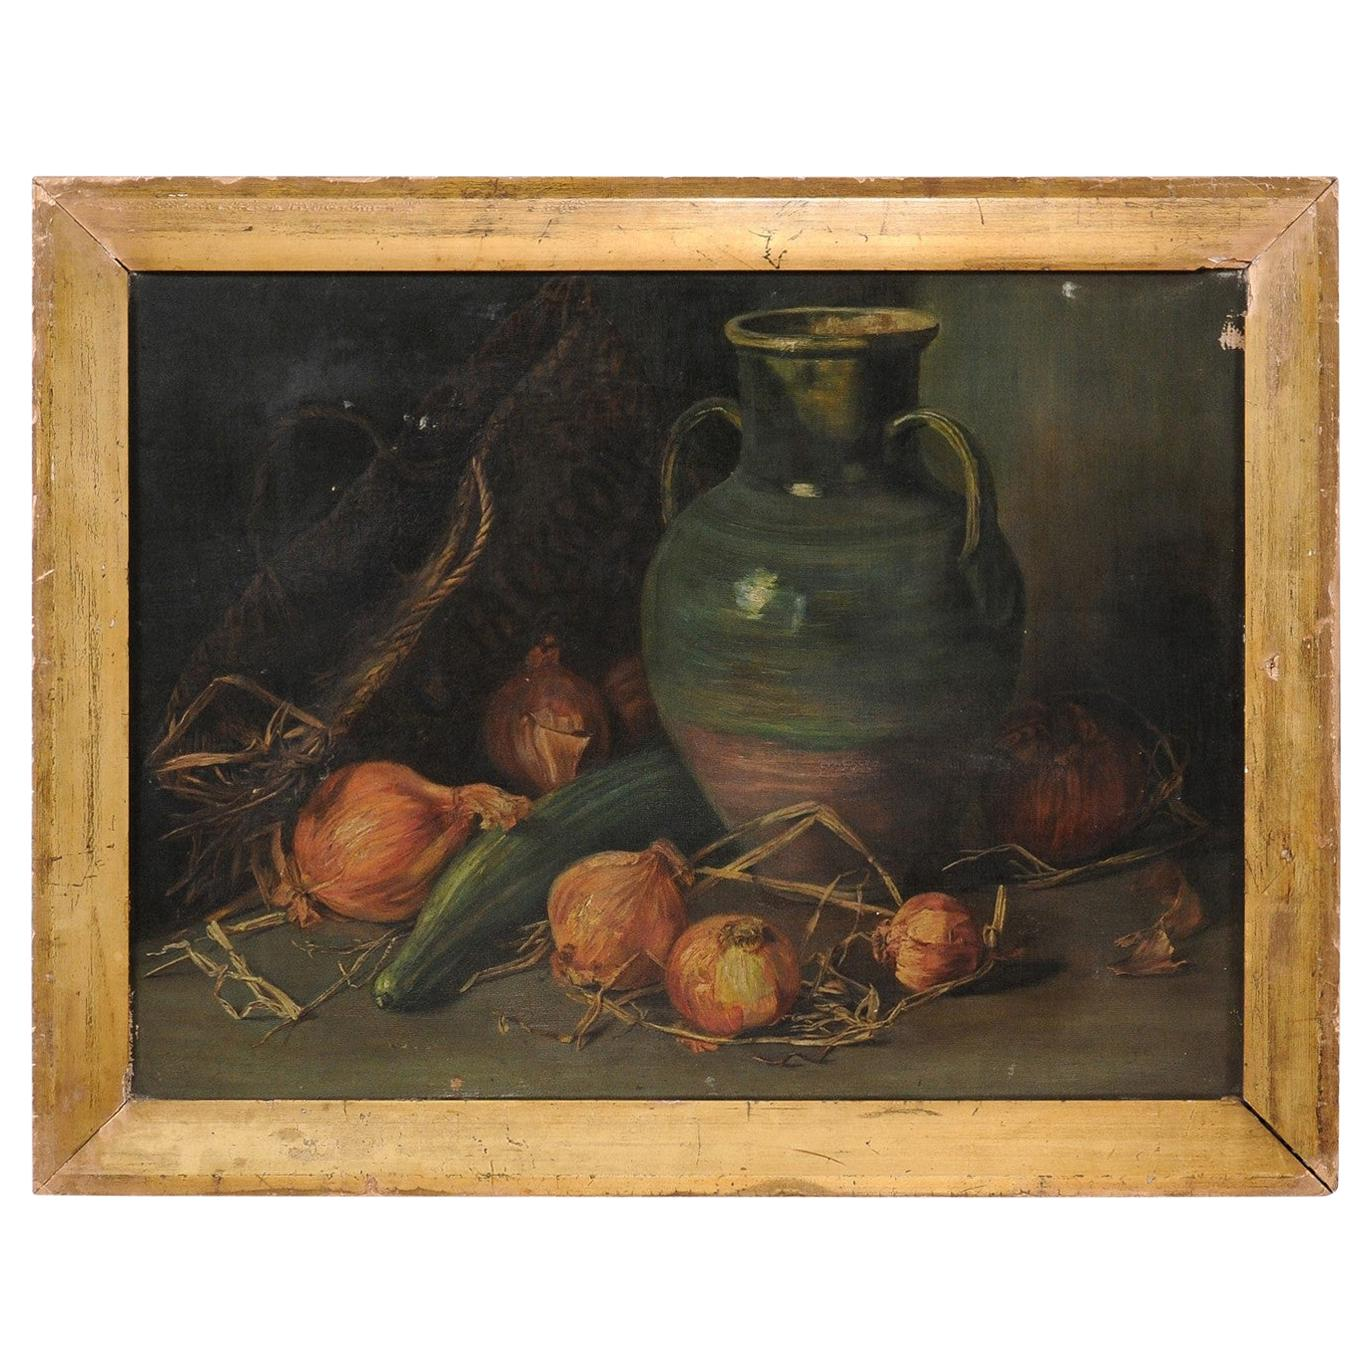 English 1860s Framed Oil on Canvas Still-Life Painting by George Jackson